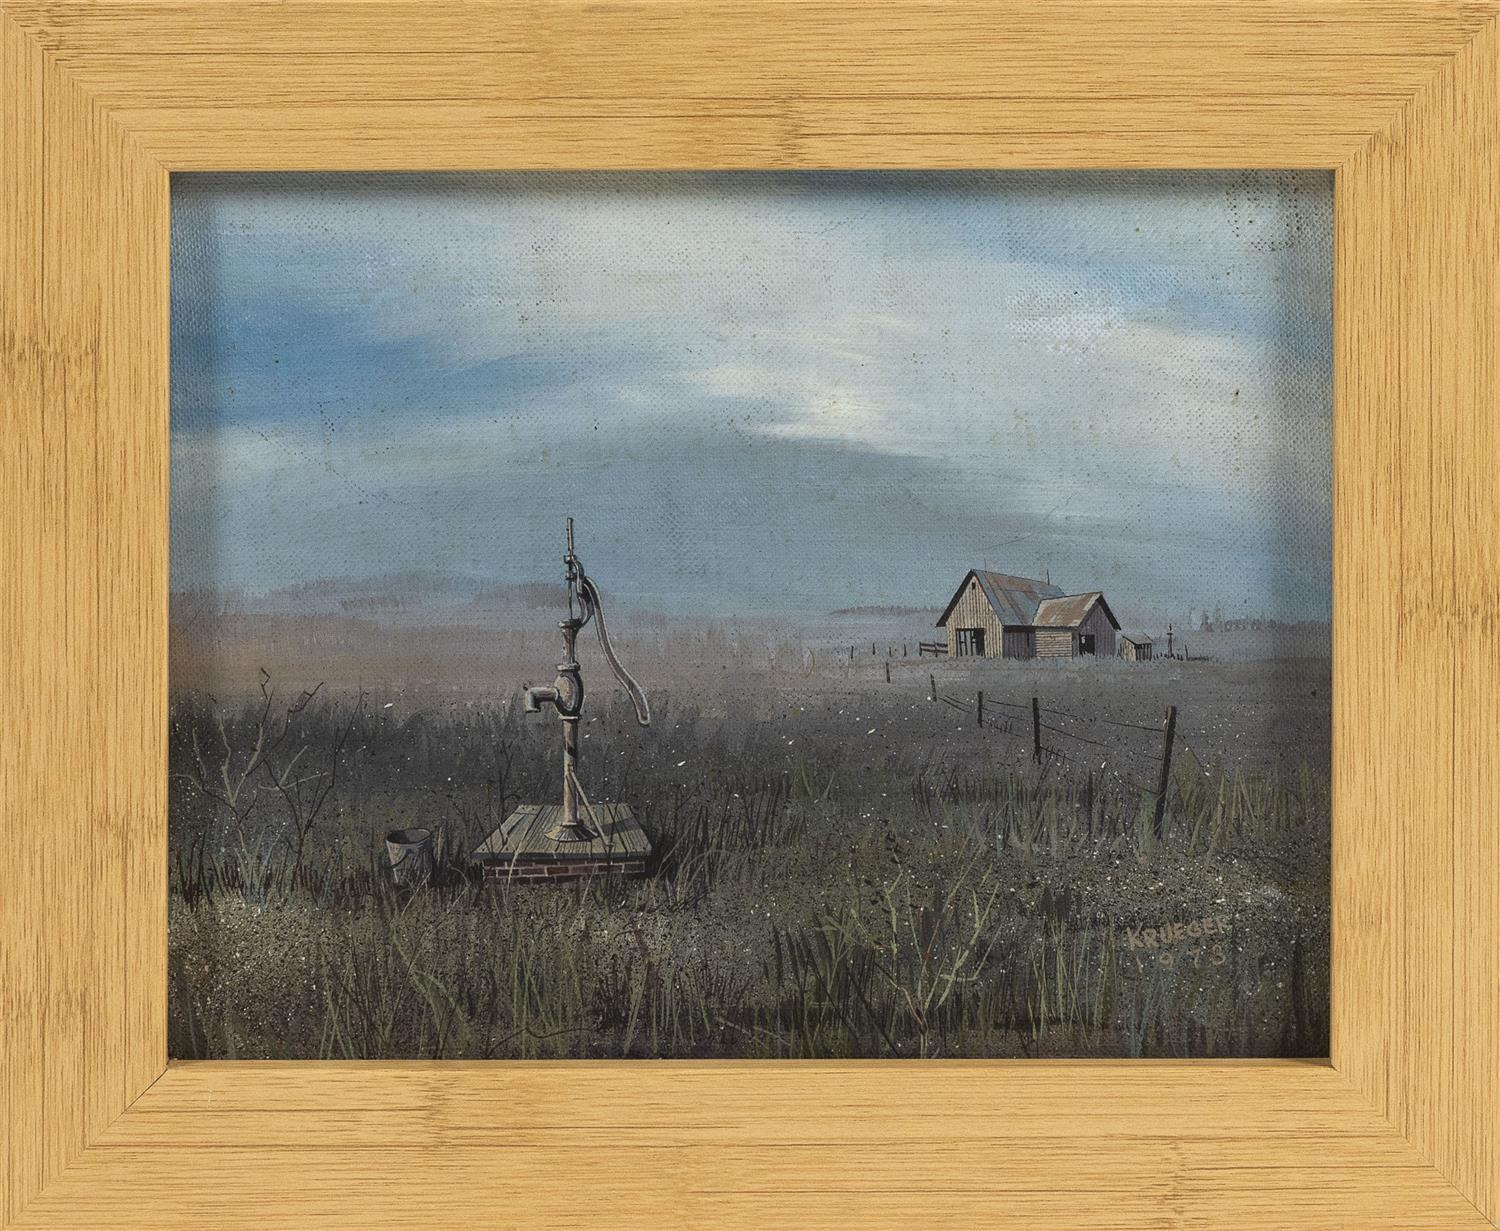 "AMERICAN SCHOOL, Dated 1973, An old farm with a well pump., Oil on board, 8"" x 10"". Framed 10"" x 12""."